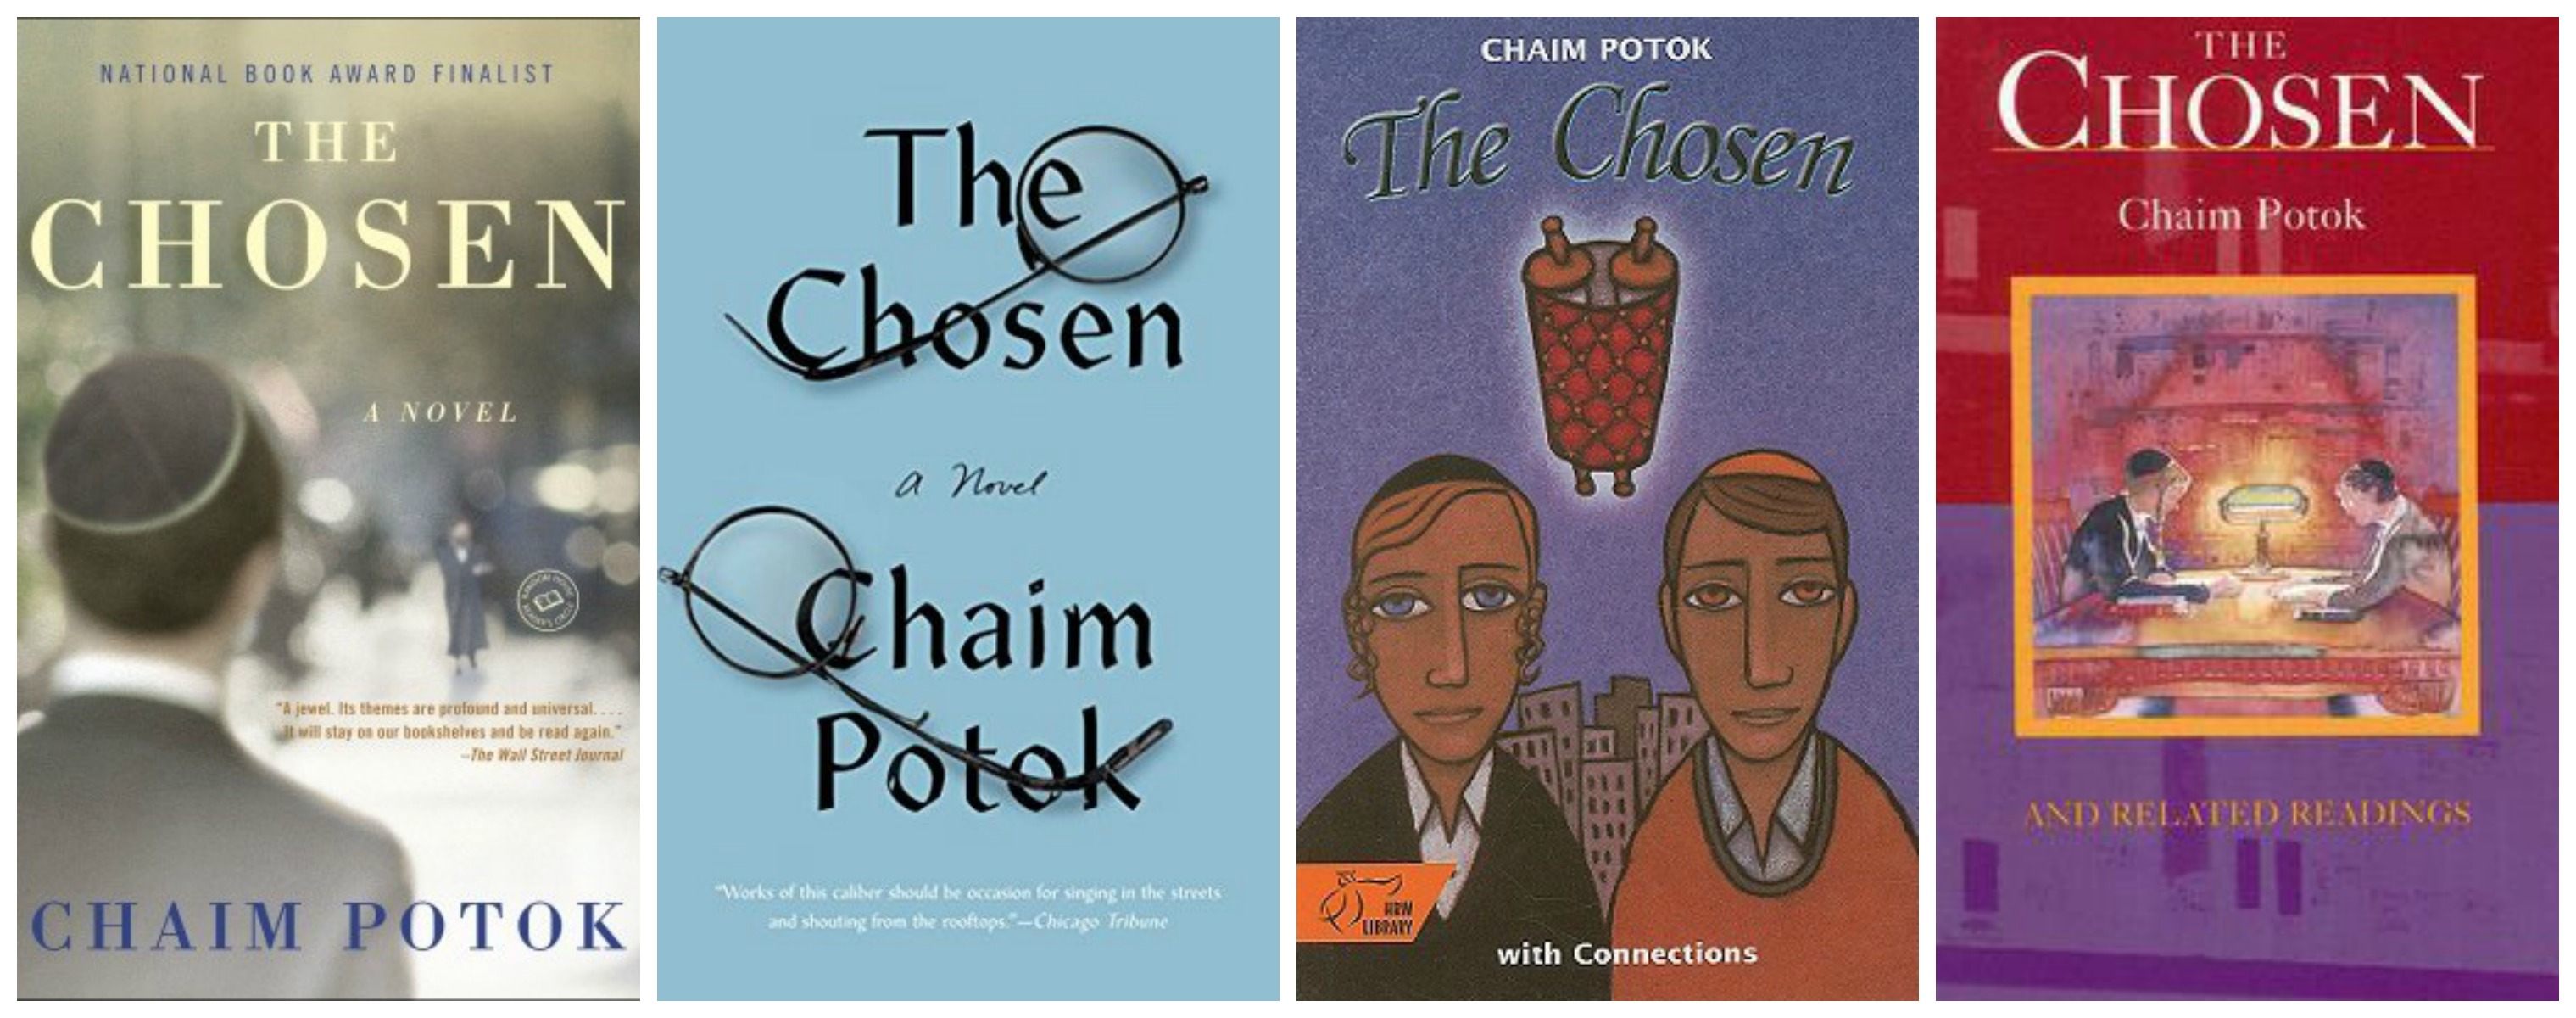 The Chosen favorite covers